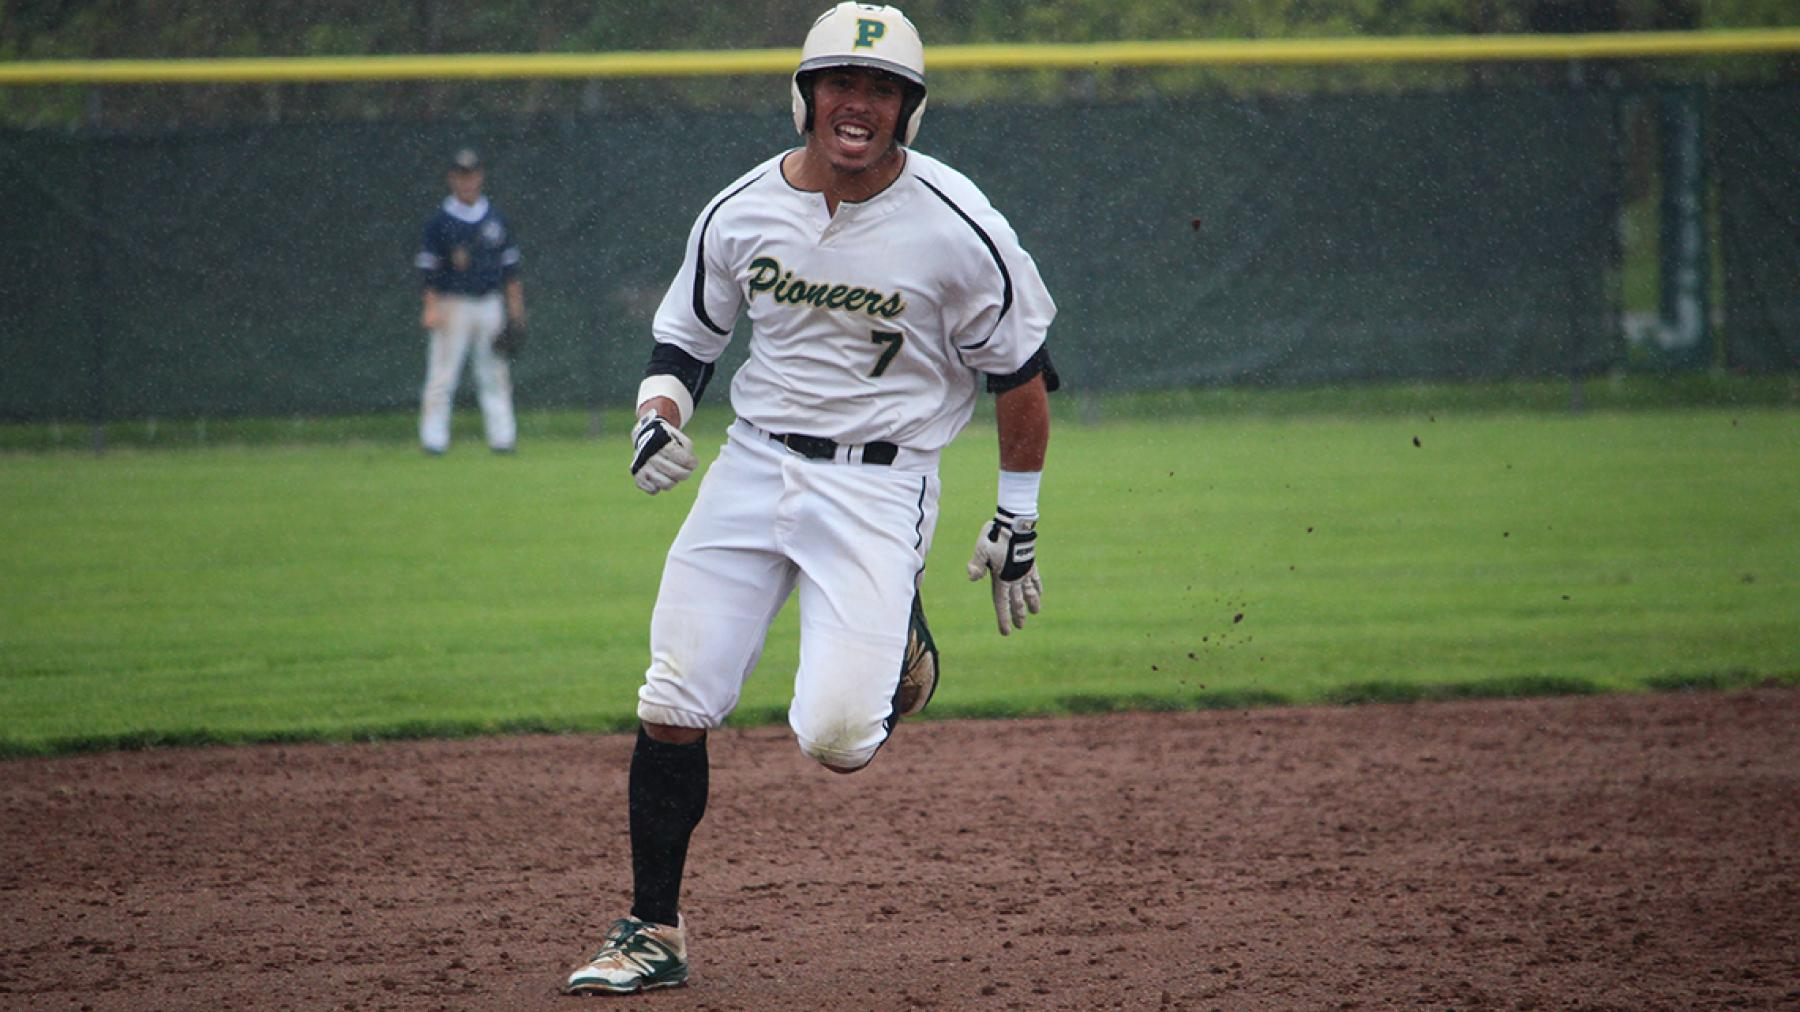 Point Park wins wild, non-conference game over SSU, 11-10